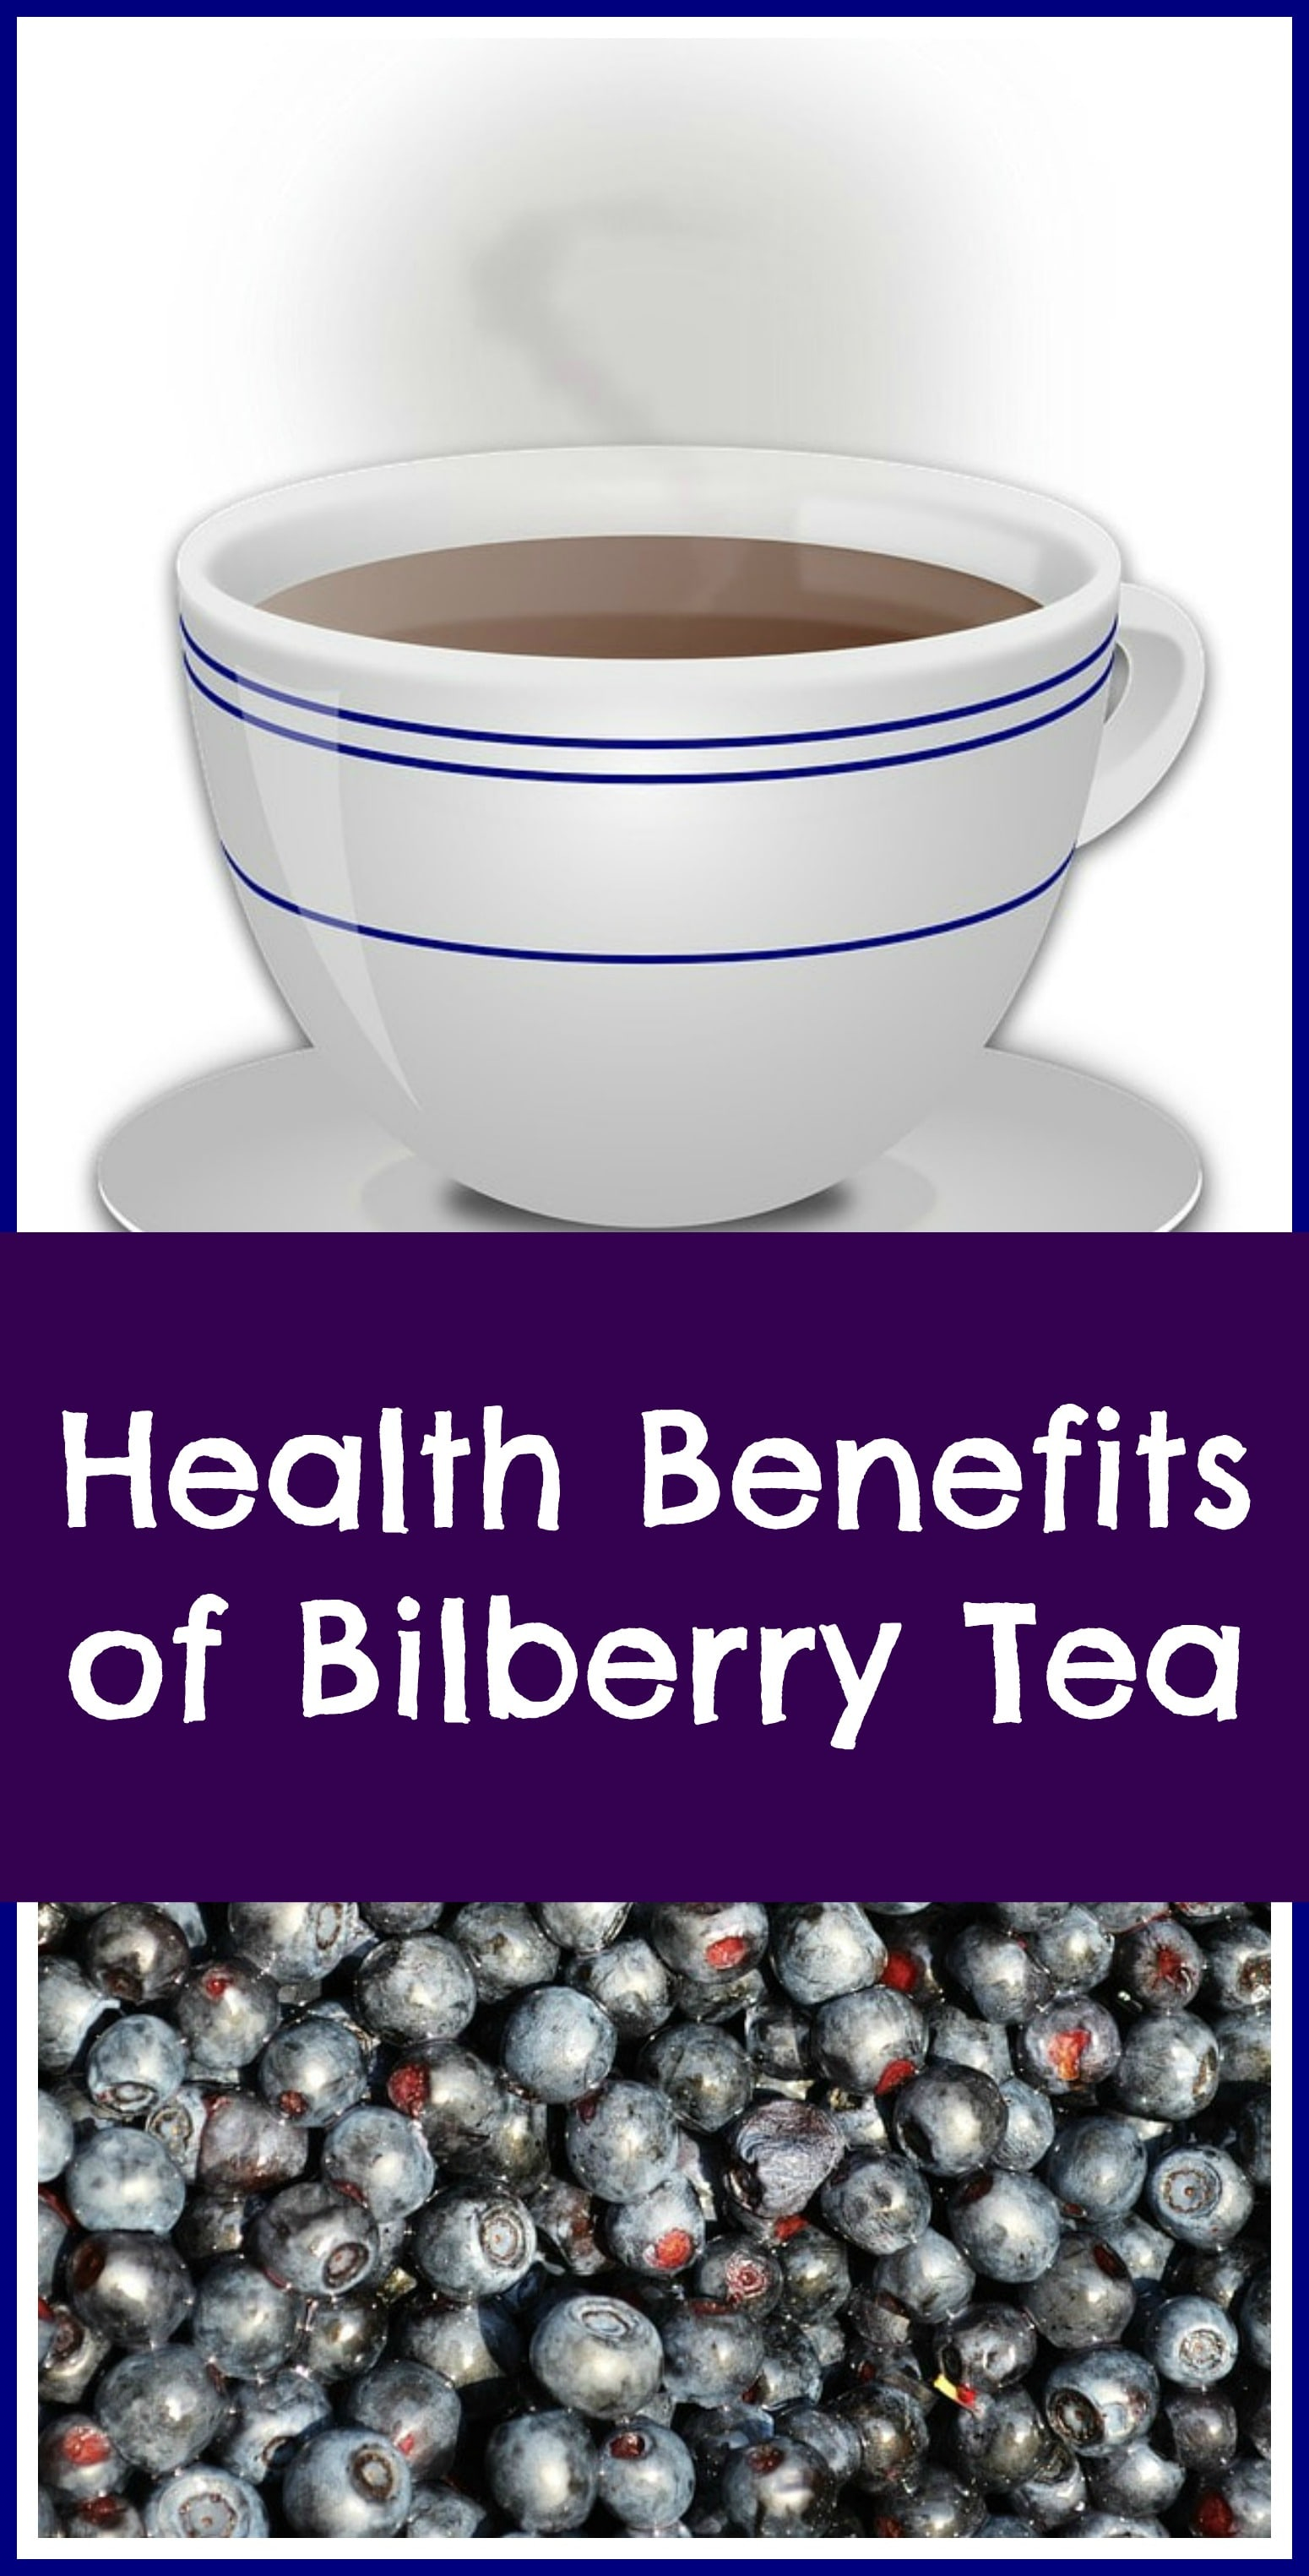 Bilberry tea